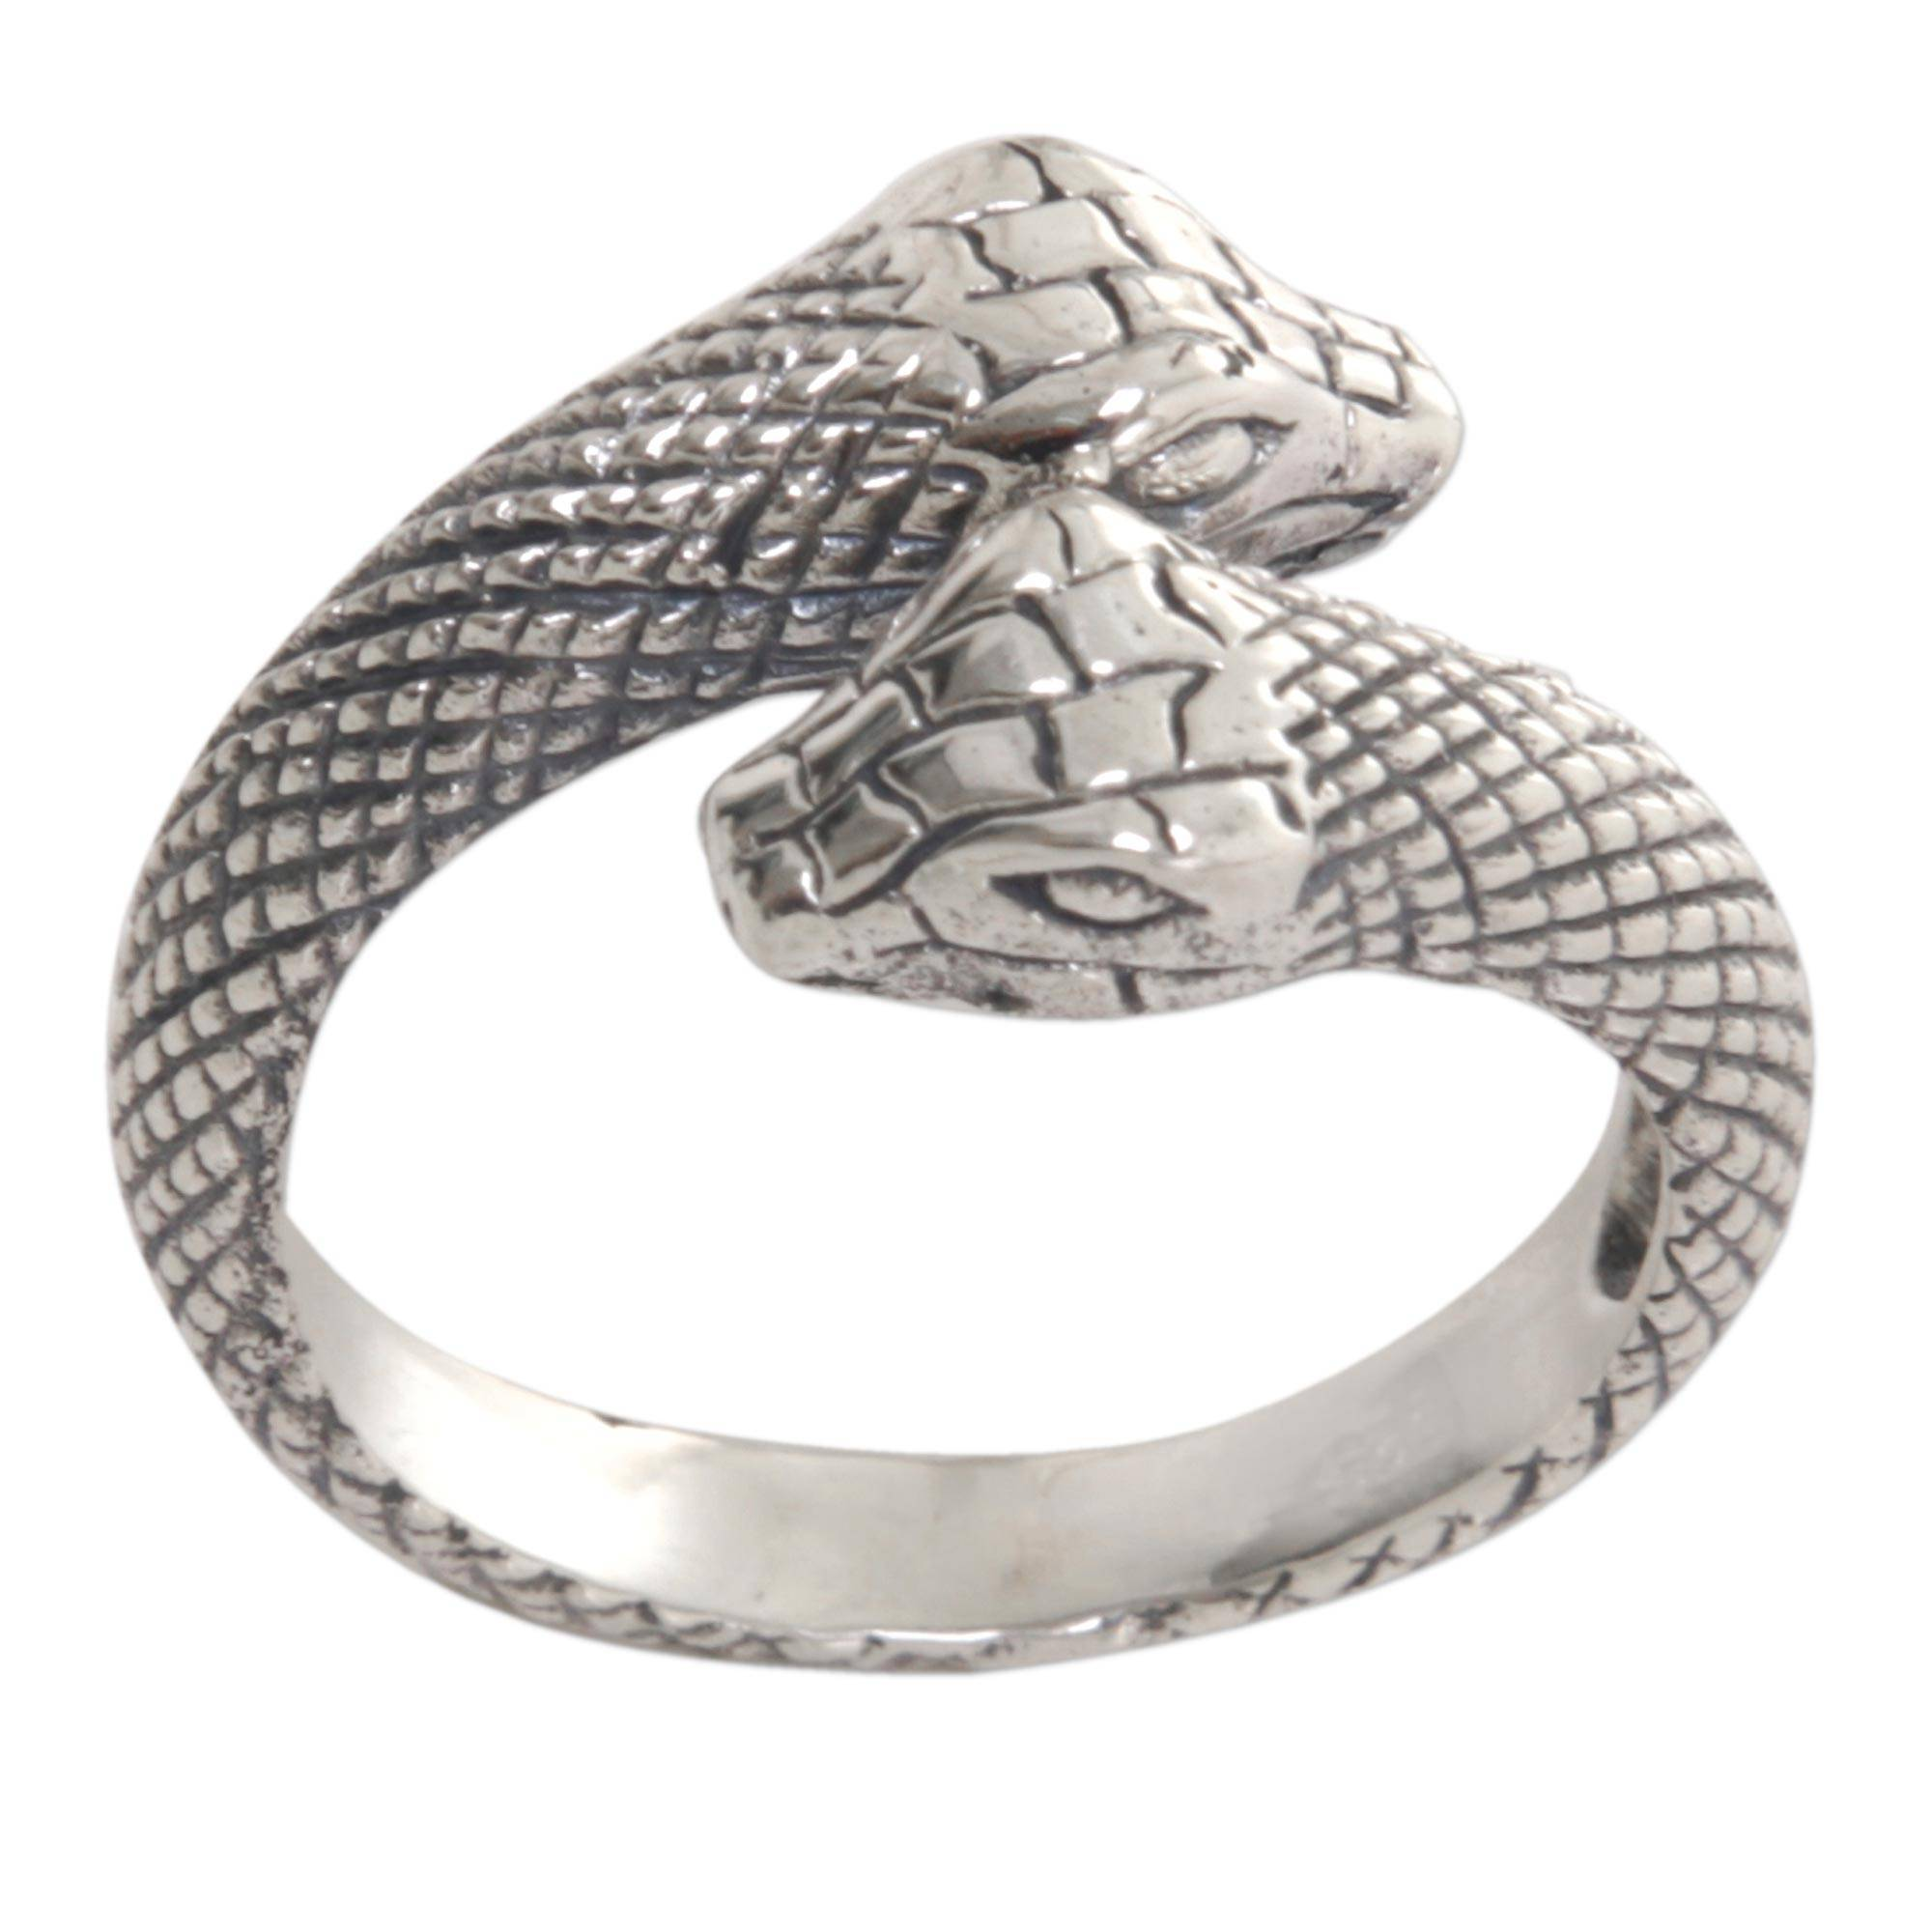 ring women jewelry lyst none gallery normal roberto rings in serpent cavalli metallic product s